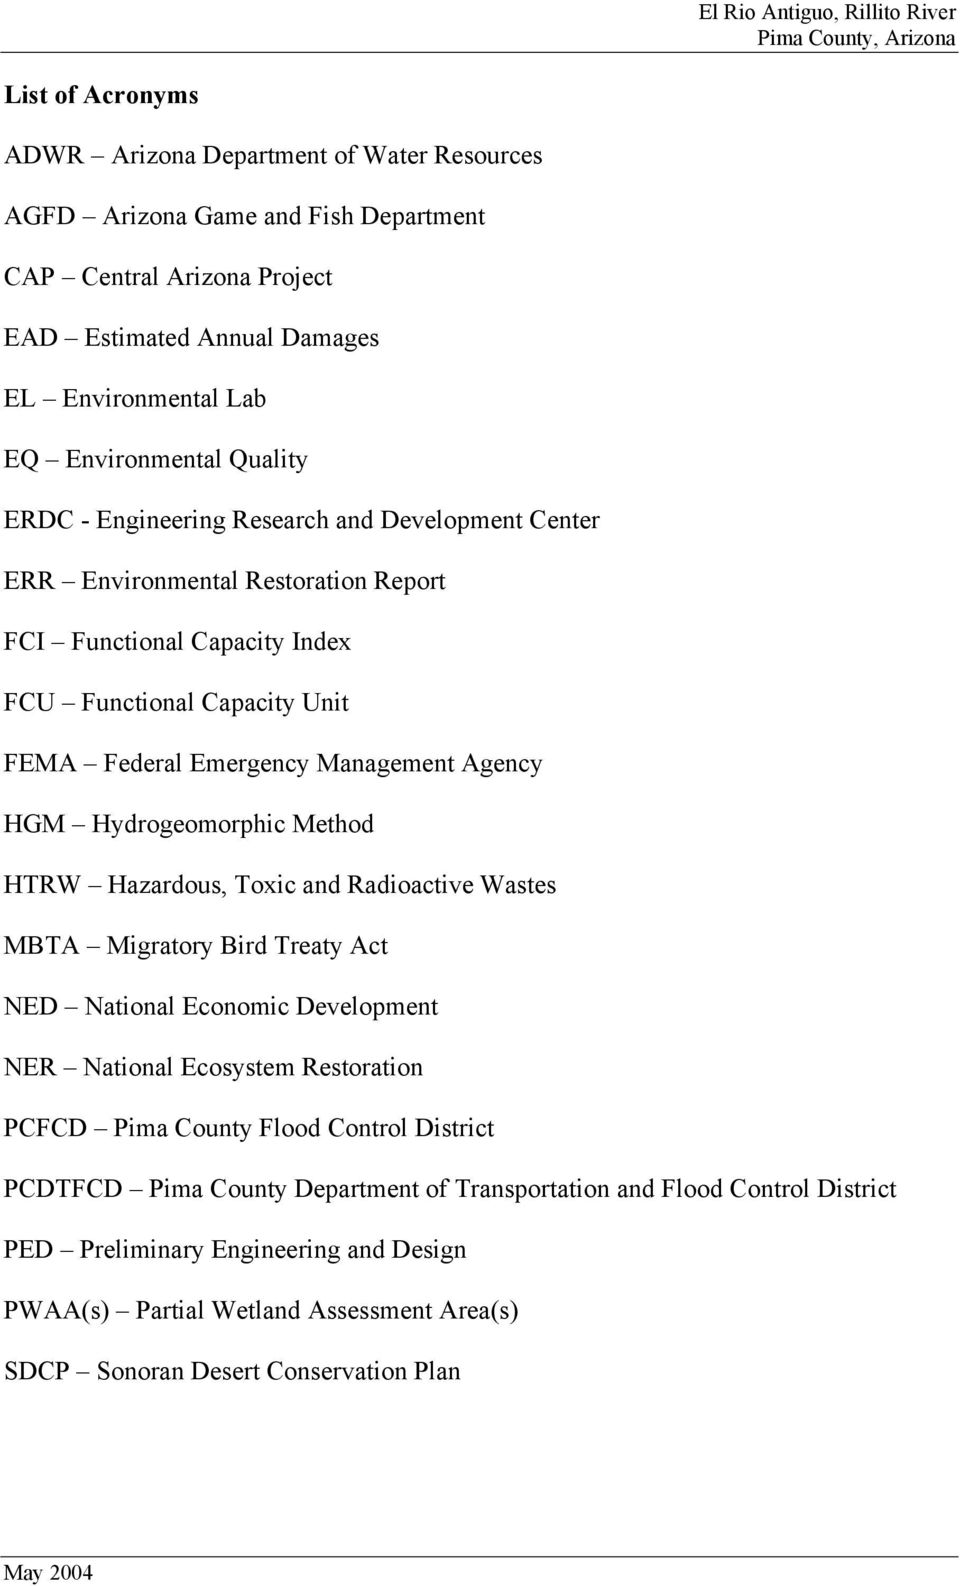 Hydrogeomorphic Method HTRW Hazardous, Toxic and Radioactive Wastes MBTA Migratory Bird Treaty Act NED National Economic Development NER National Ecosystem Restoration PCFCD Pima County Flood Control